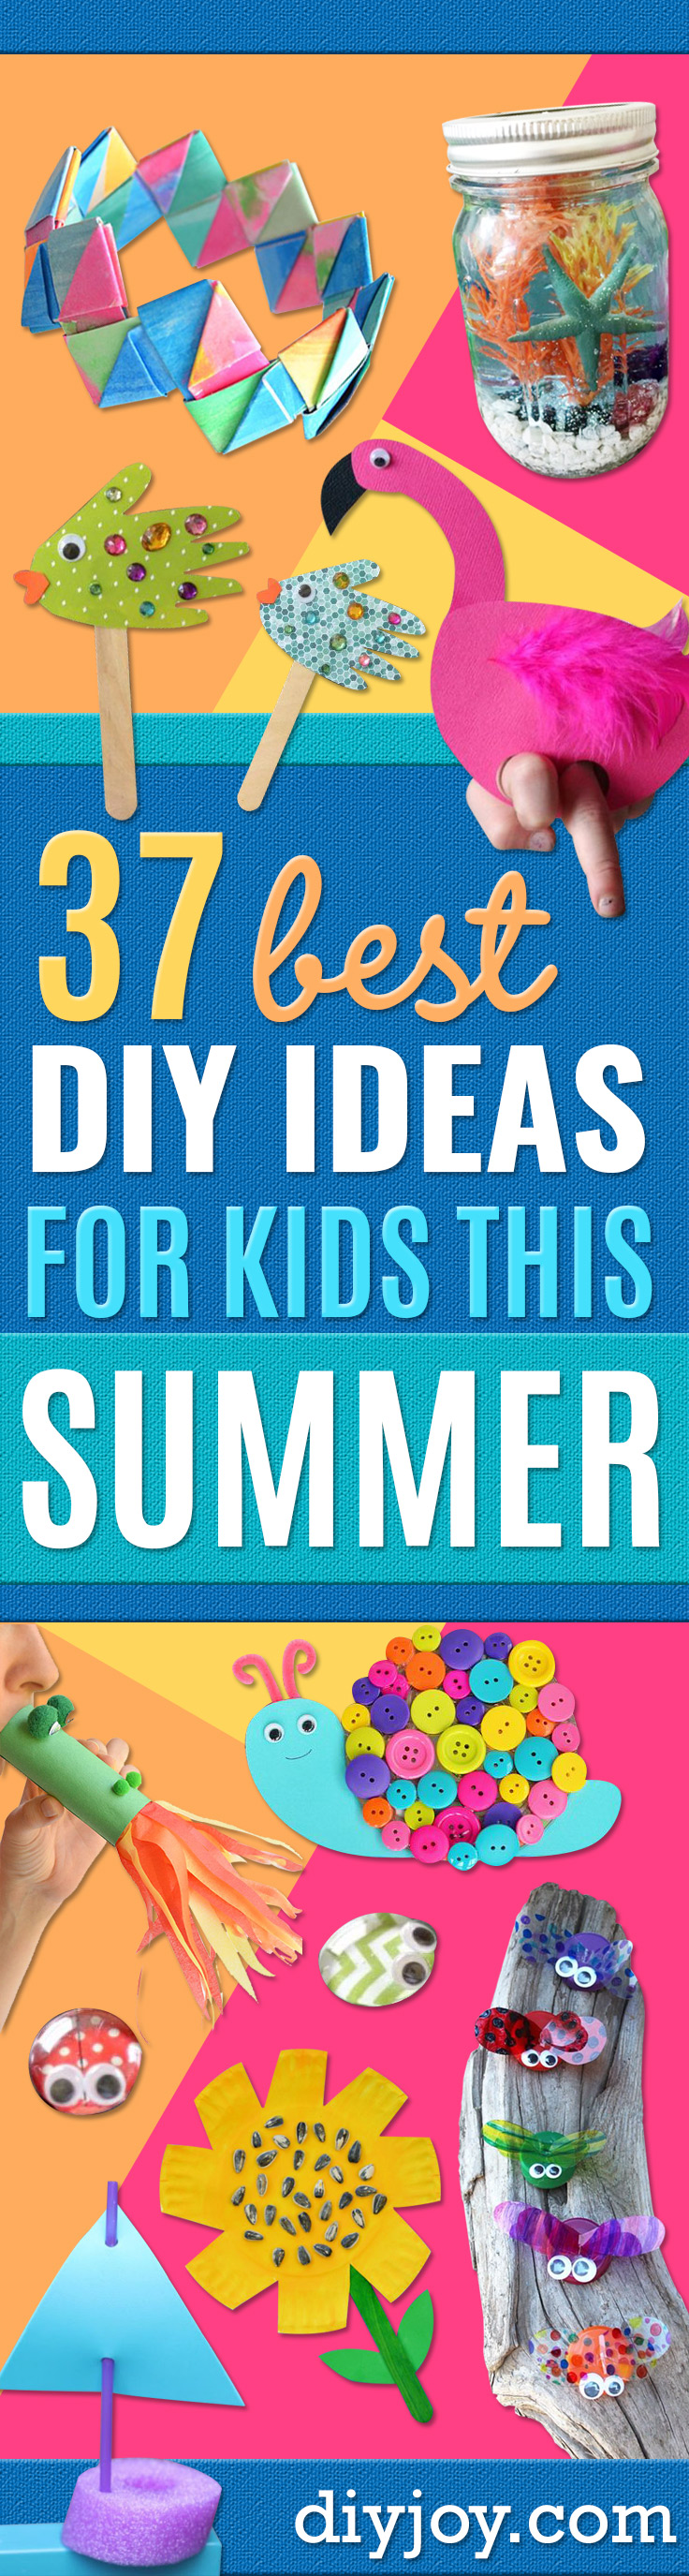 DIY Ideas for Kids To Make This Summer - Fun Crafts and Cool Projects for Boys and Girls To Make at Home - Easy and Cheap Do It Yourself Project Ideas With Paint, Glue, Paper, Glitter, Chalk and Things You Can Find Around The House - Creative Arts and Crafts Ideas for Children #summer #kidscrafts